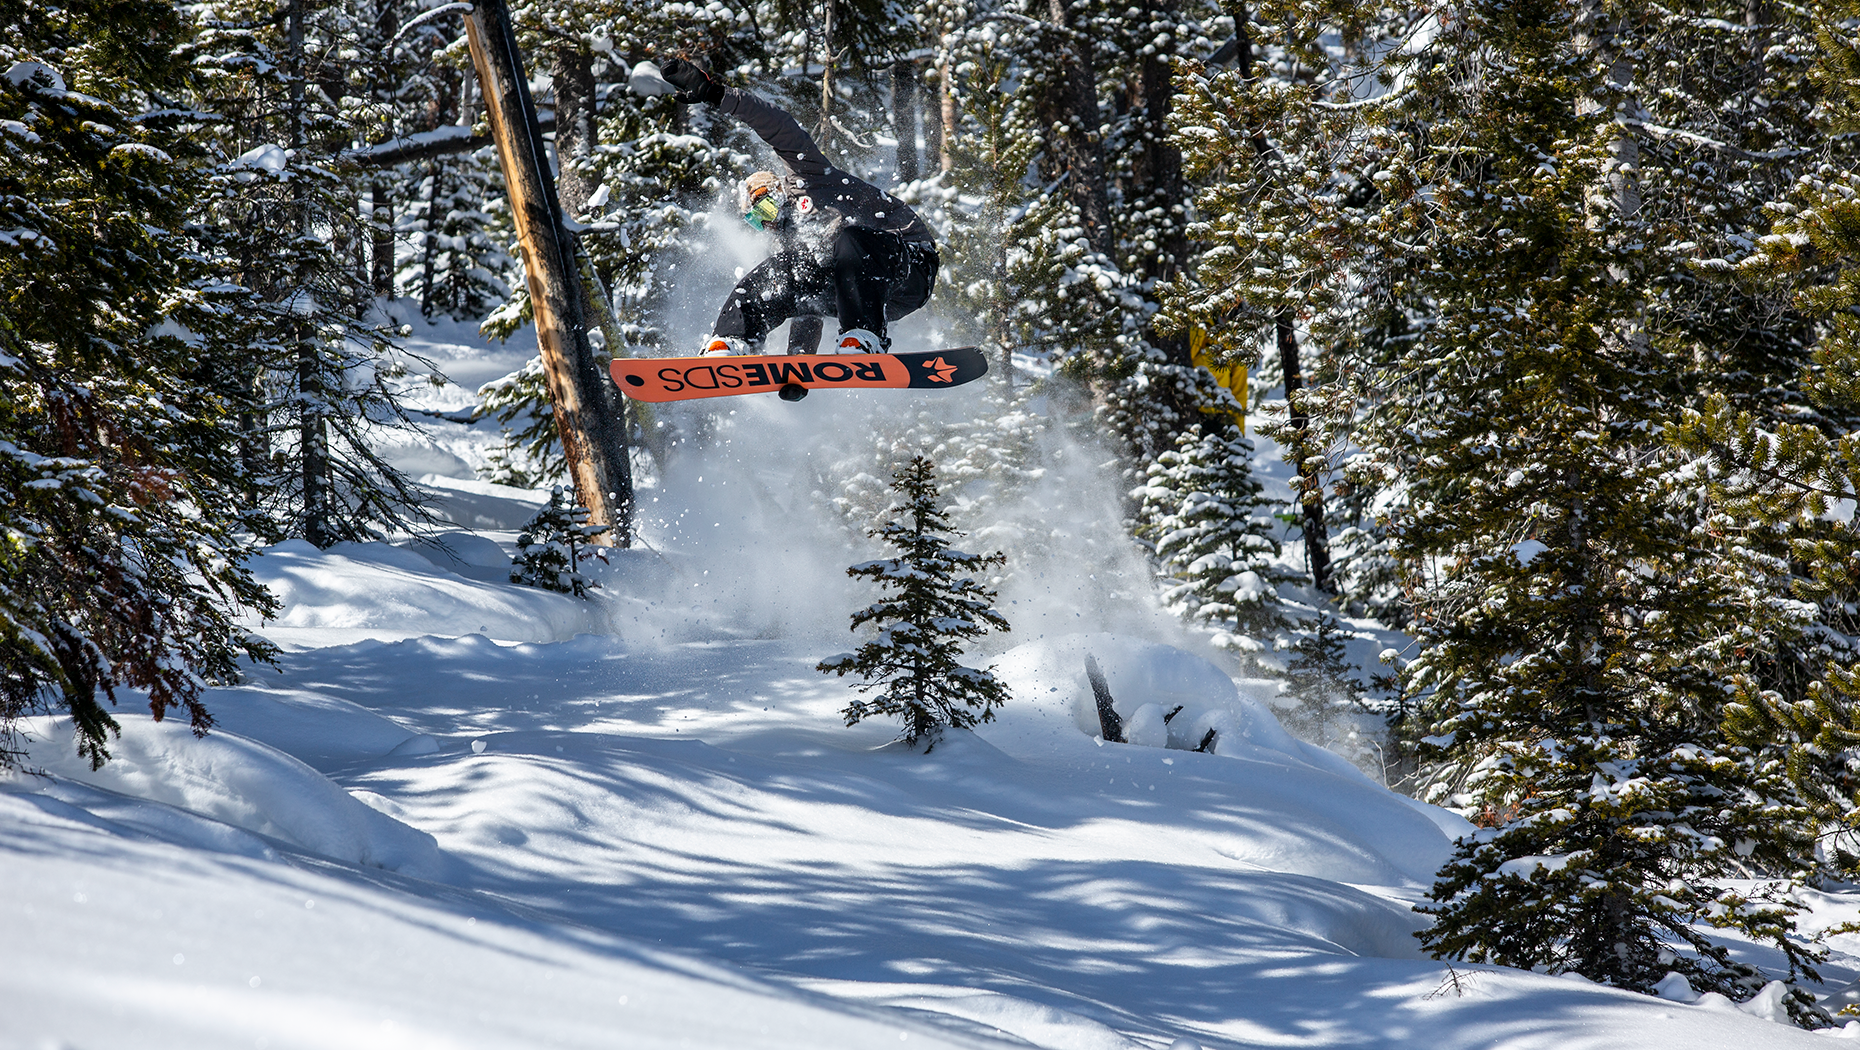 Ozzy Henning riding the powder on his rome snowboard